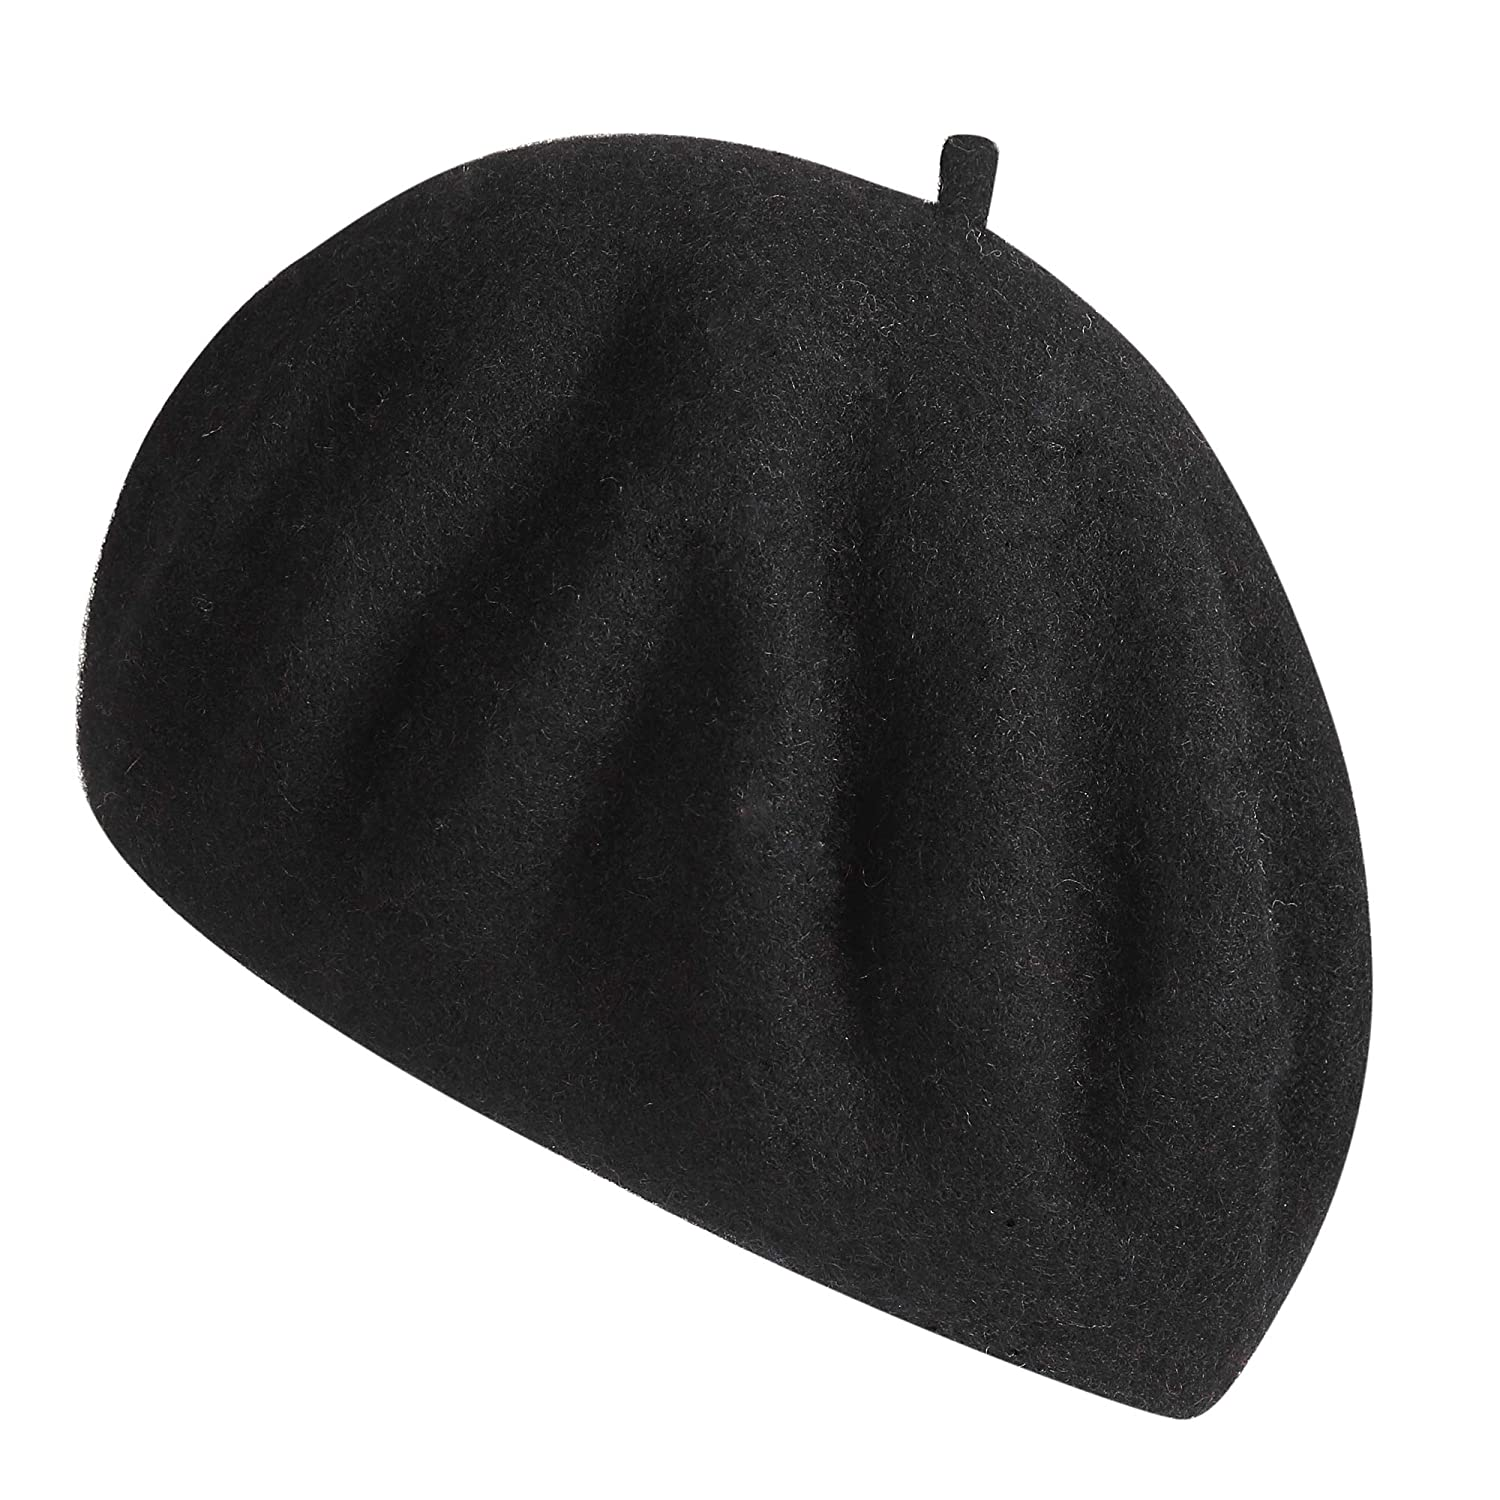 2d93c0a872931 ZHWNSY Womens Beret Wool French Beanie Cap Hat Solid Color Lightweight  Casual Classic(Black) at Amazon Women s Clothing store